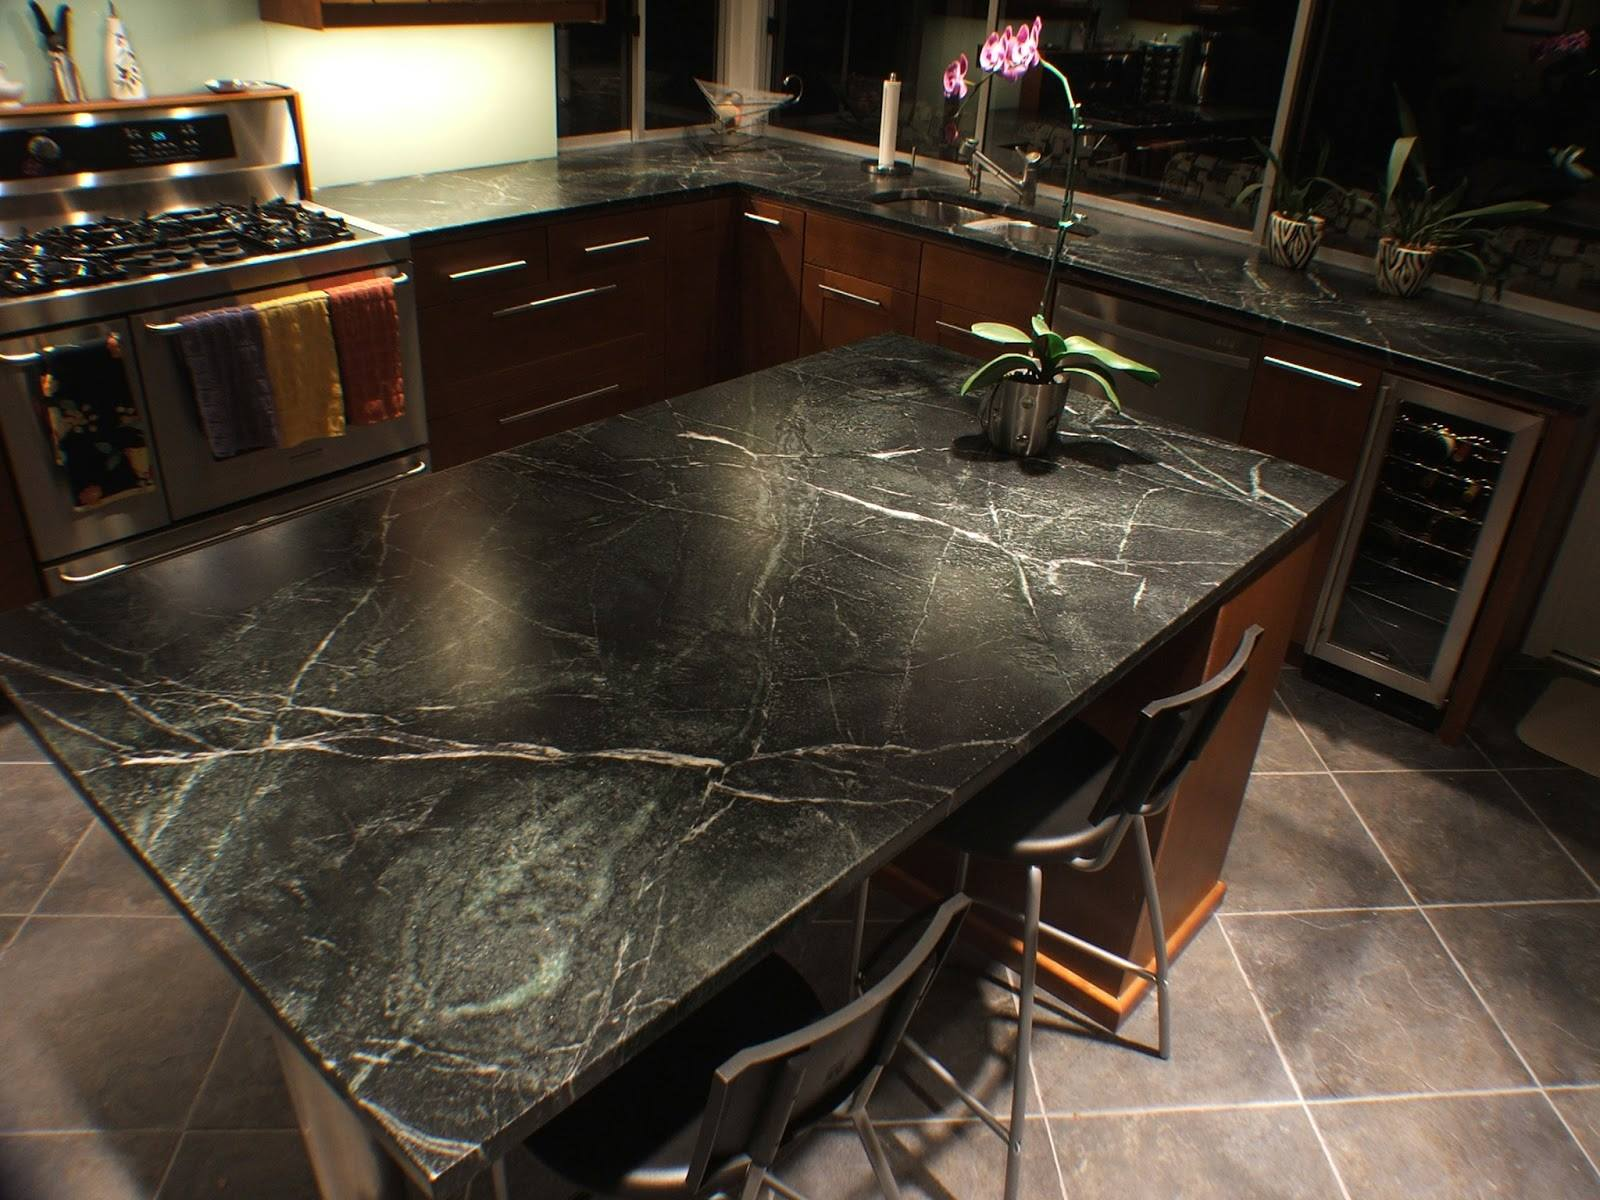 Uncategorized Soapstone Kitchen Countertops soapstone countertops archives wow local in elkridge md crofton ten reasons to choose countertops